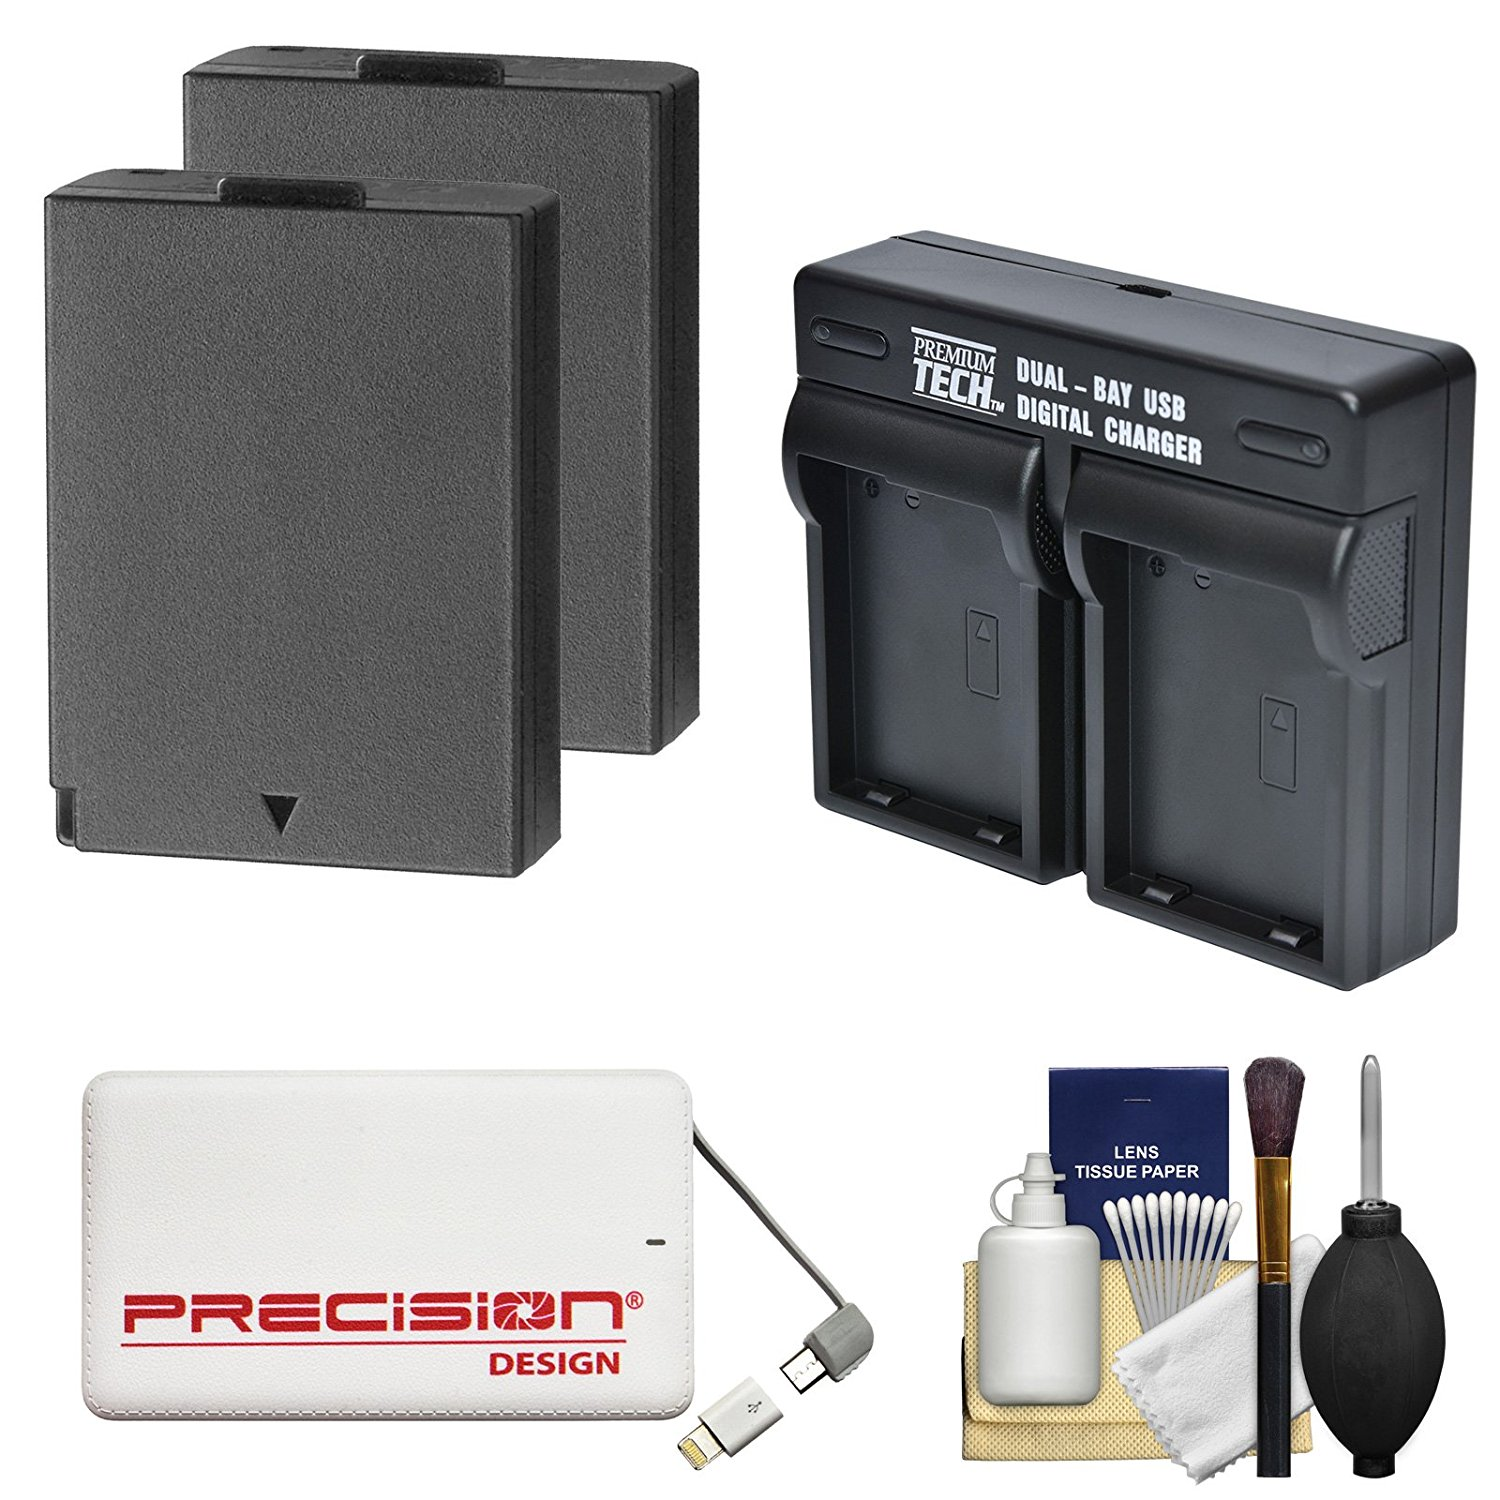 Power2000 LP-E10 Rechargeable Battery (2x) & Dual Charger + Power Bank + Kit for Canon EOS Rebel T3, T5, T6 DSLR Cameras